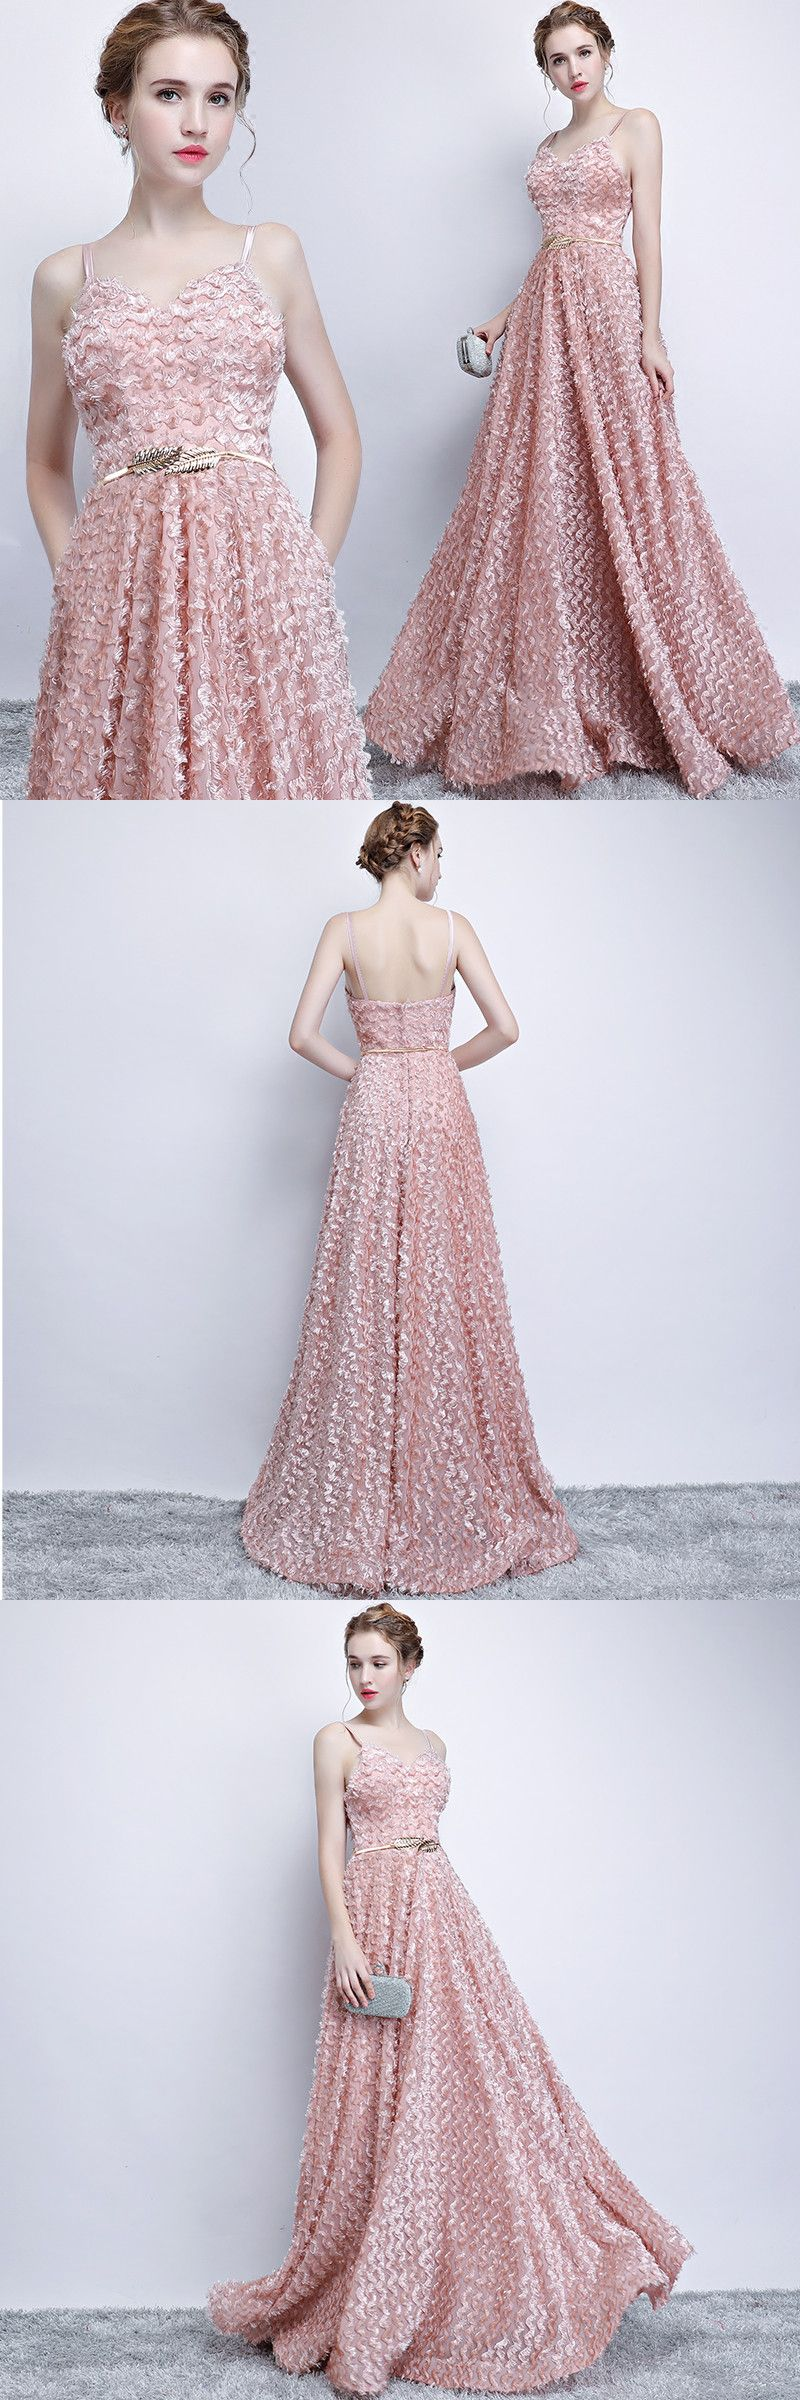 Chic a line prom dress modest unique long prom dress vb to